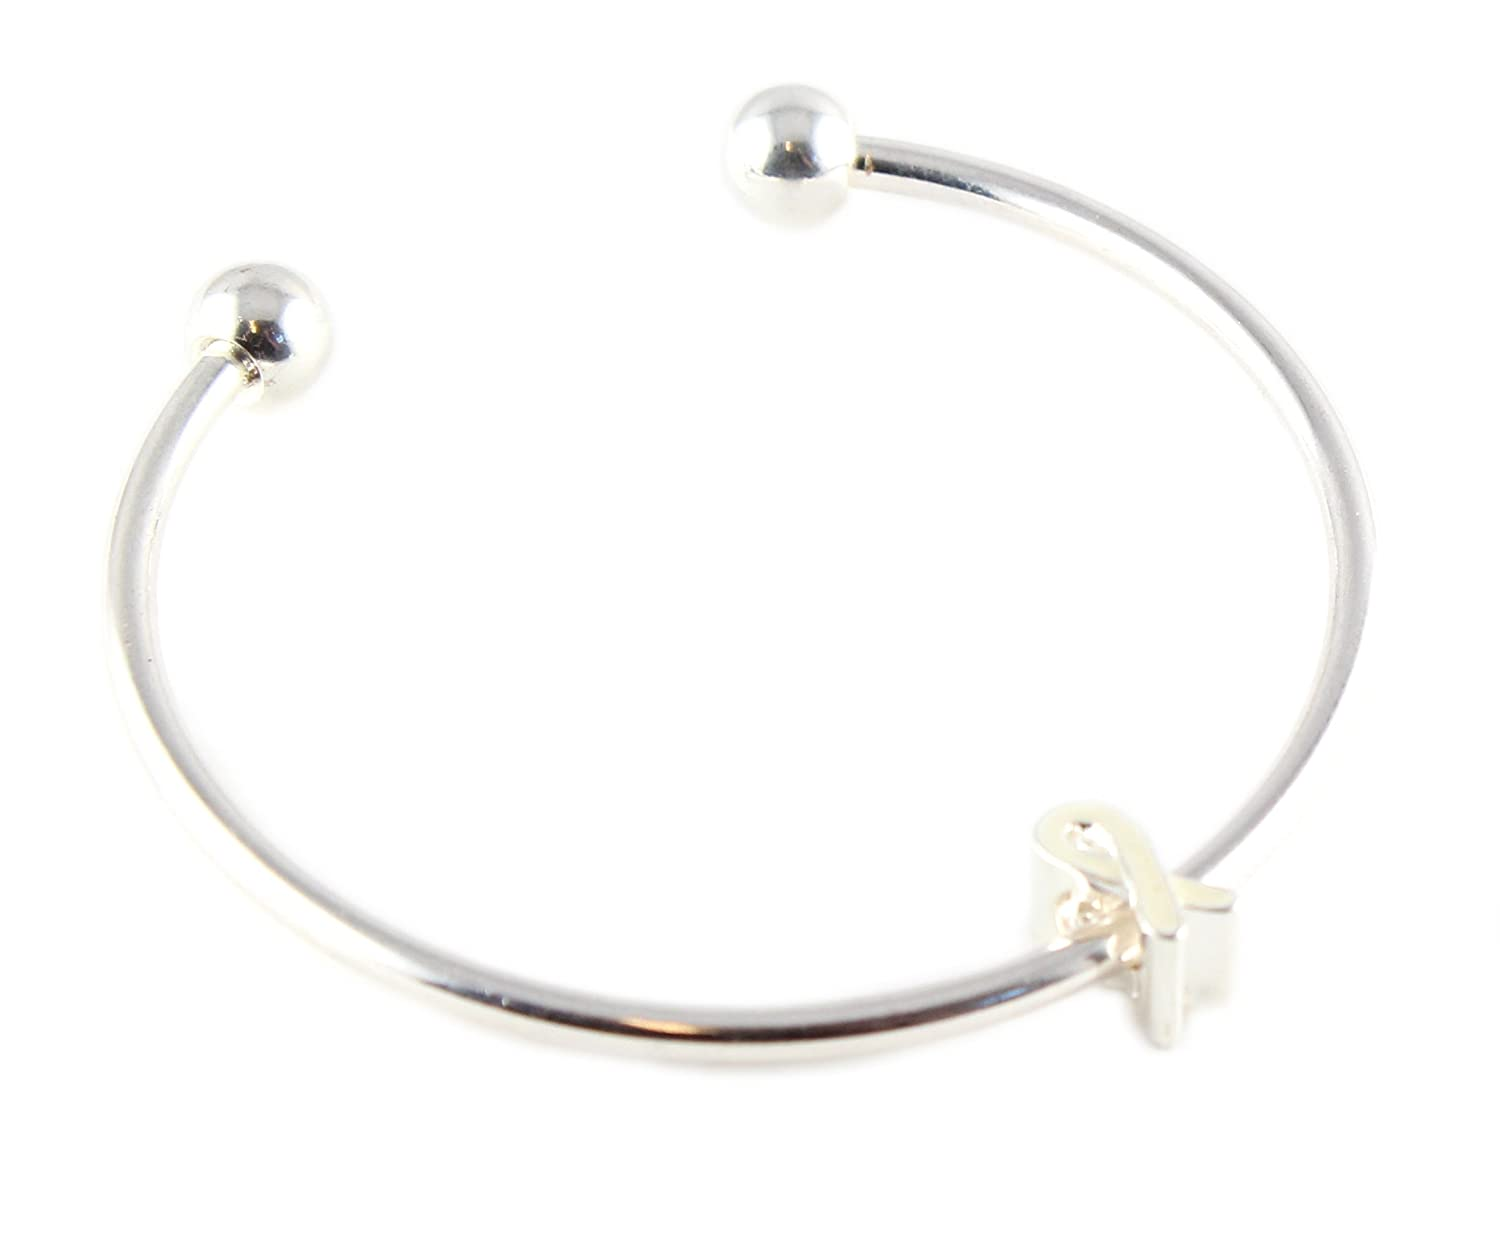 White Ribbon Charm on Cuff Bracelet Buy 1 Give 1 Awareness Products Warehouse